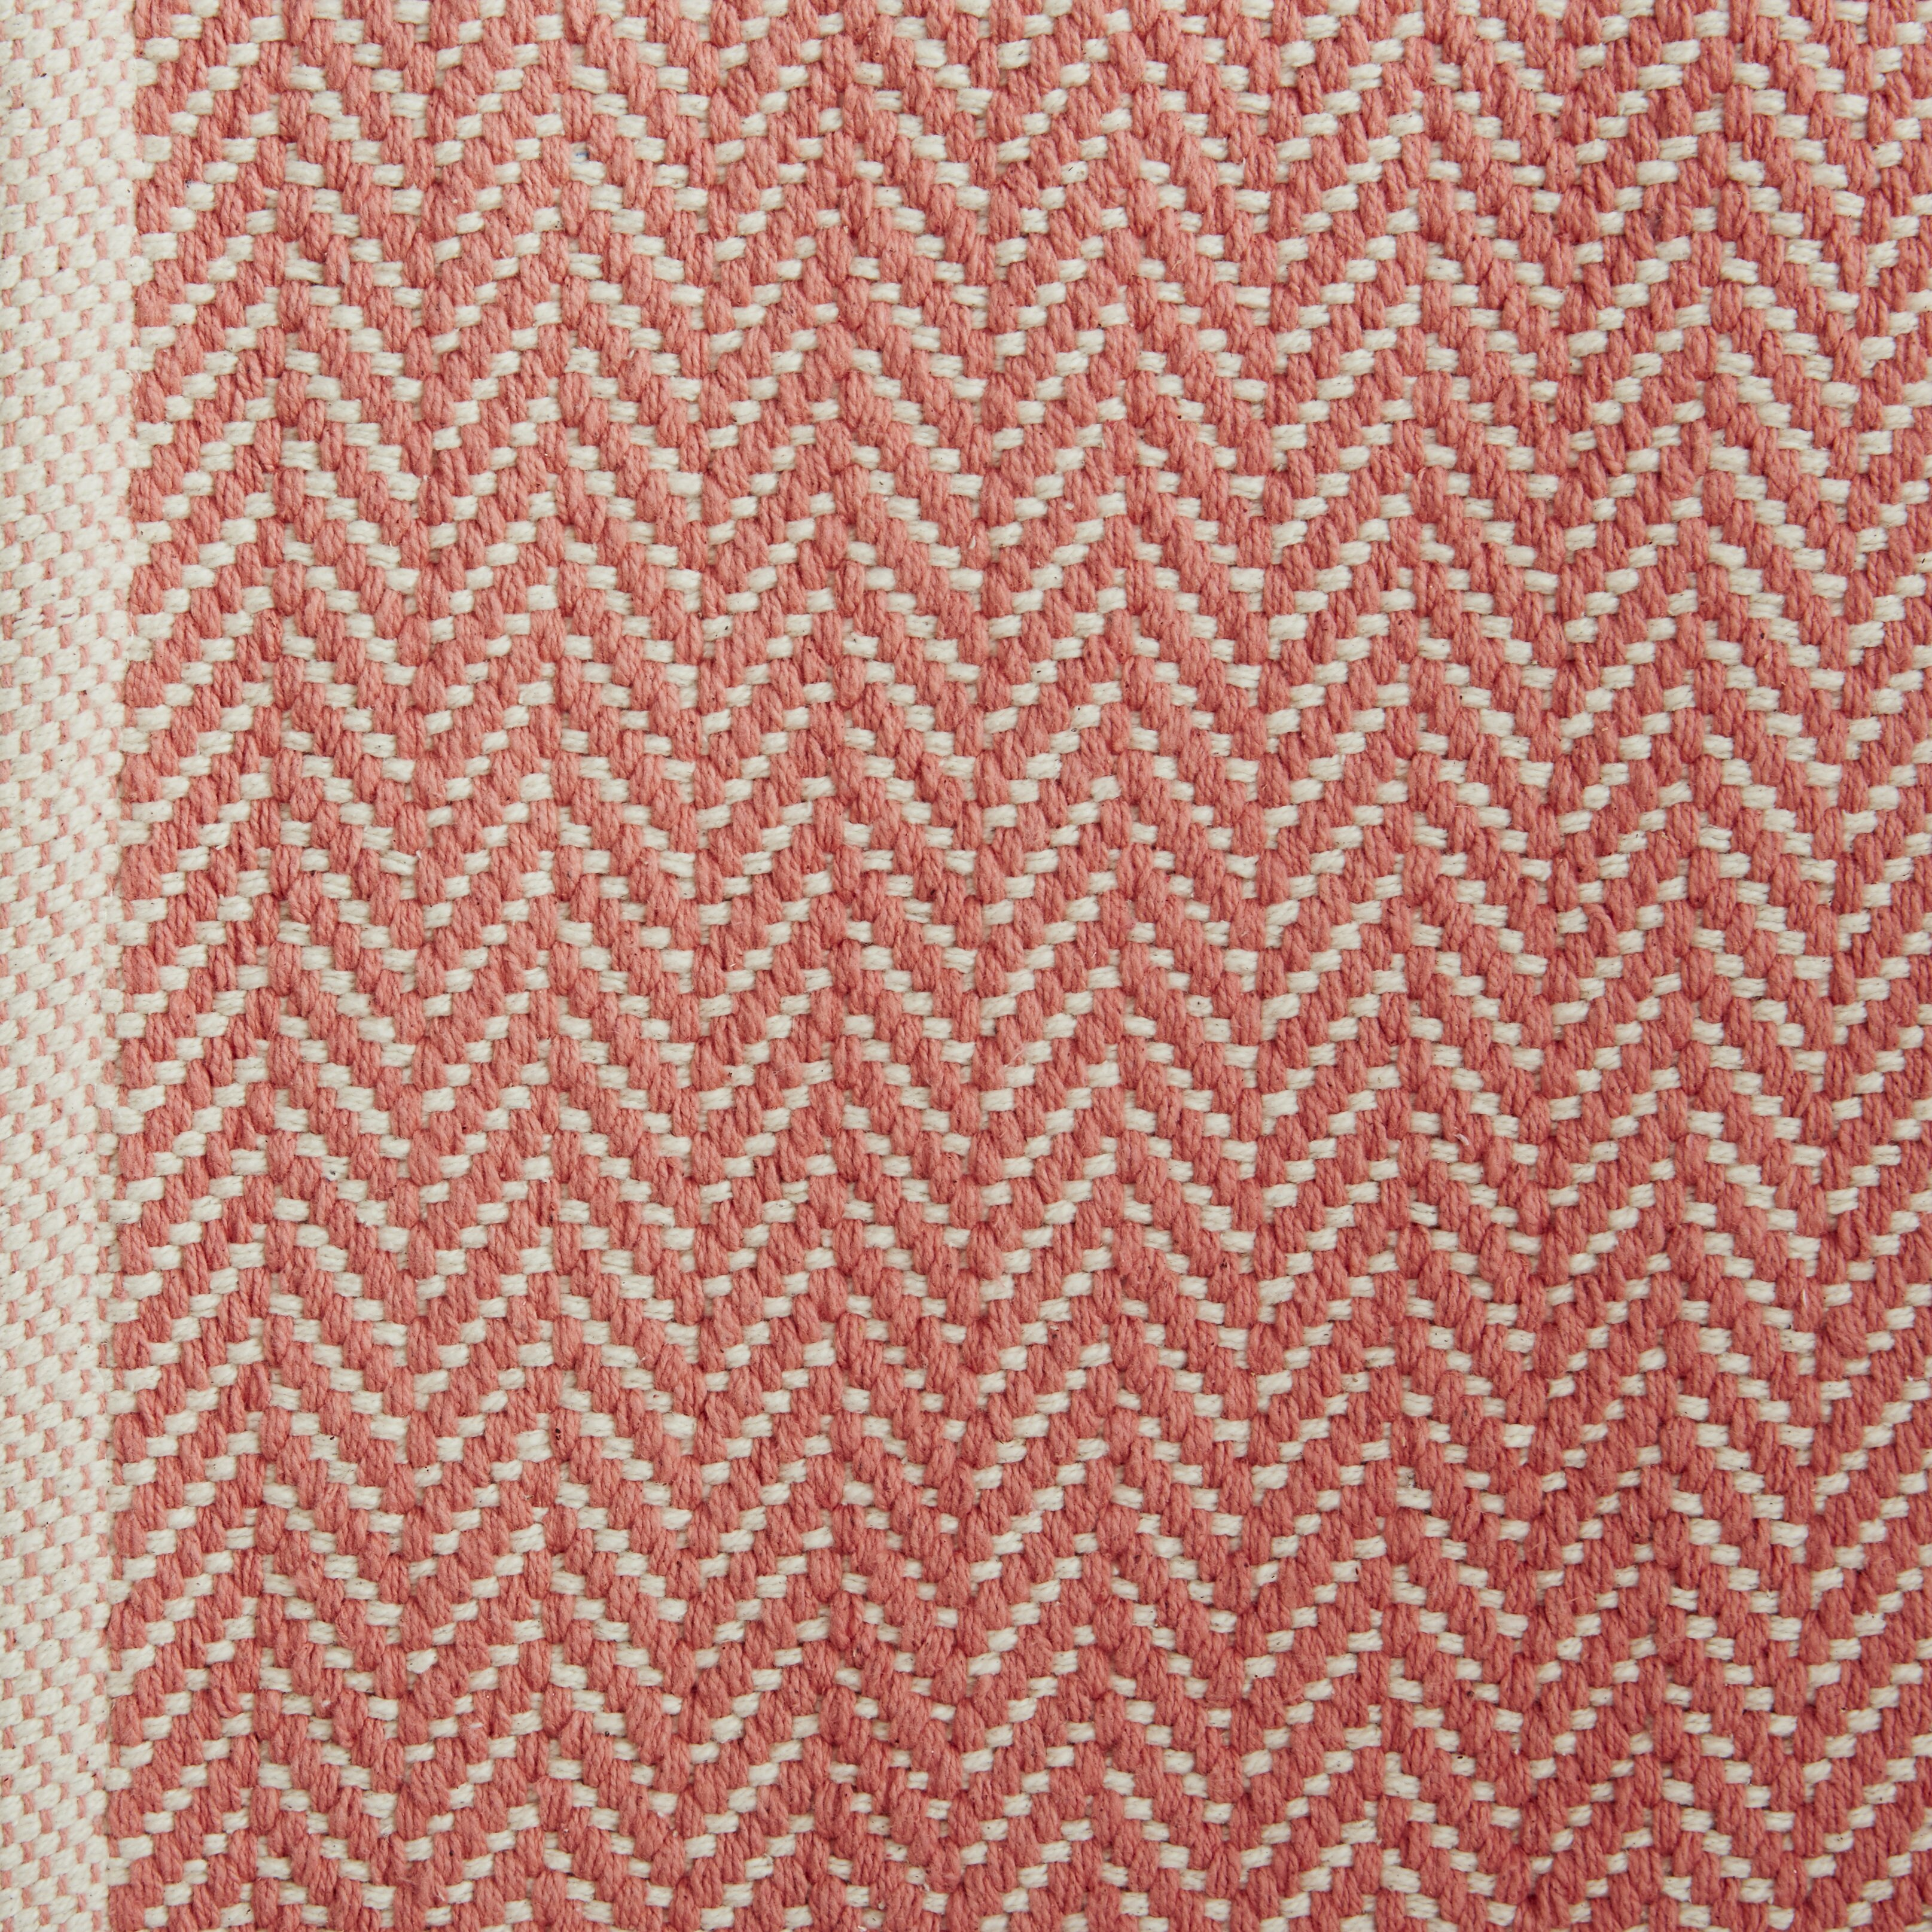 Dash and albert rugs herringbone hand woven pink area rug for Dash and albert wool rugs